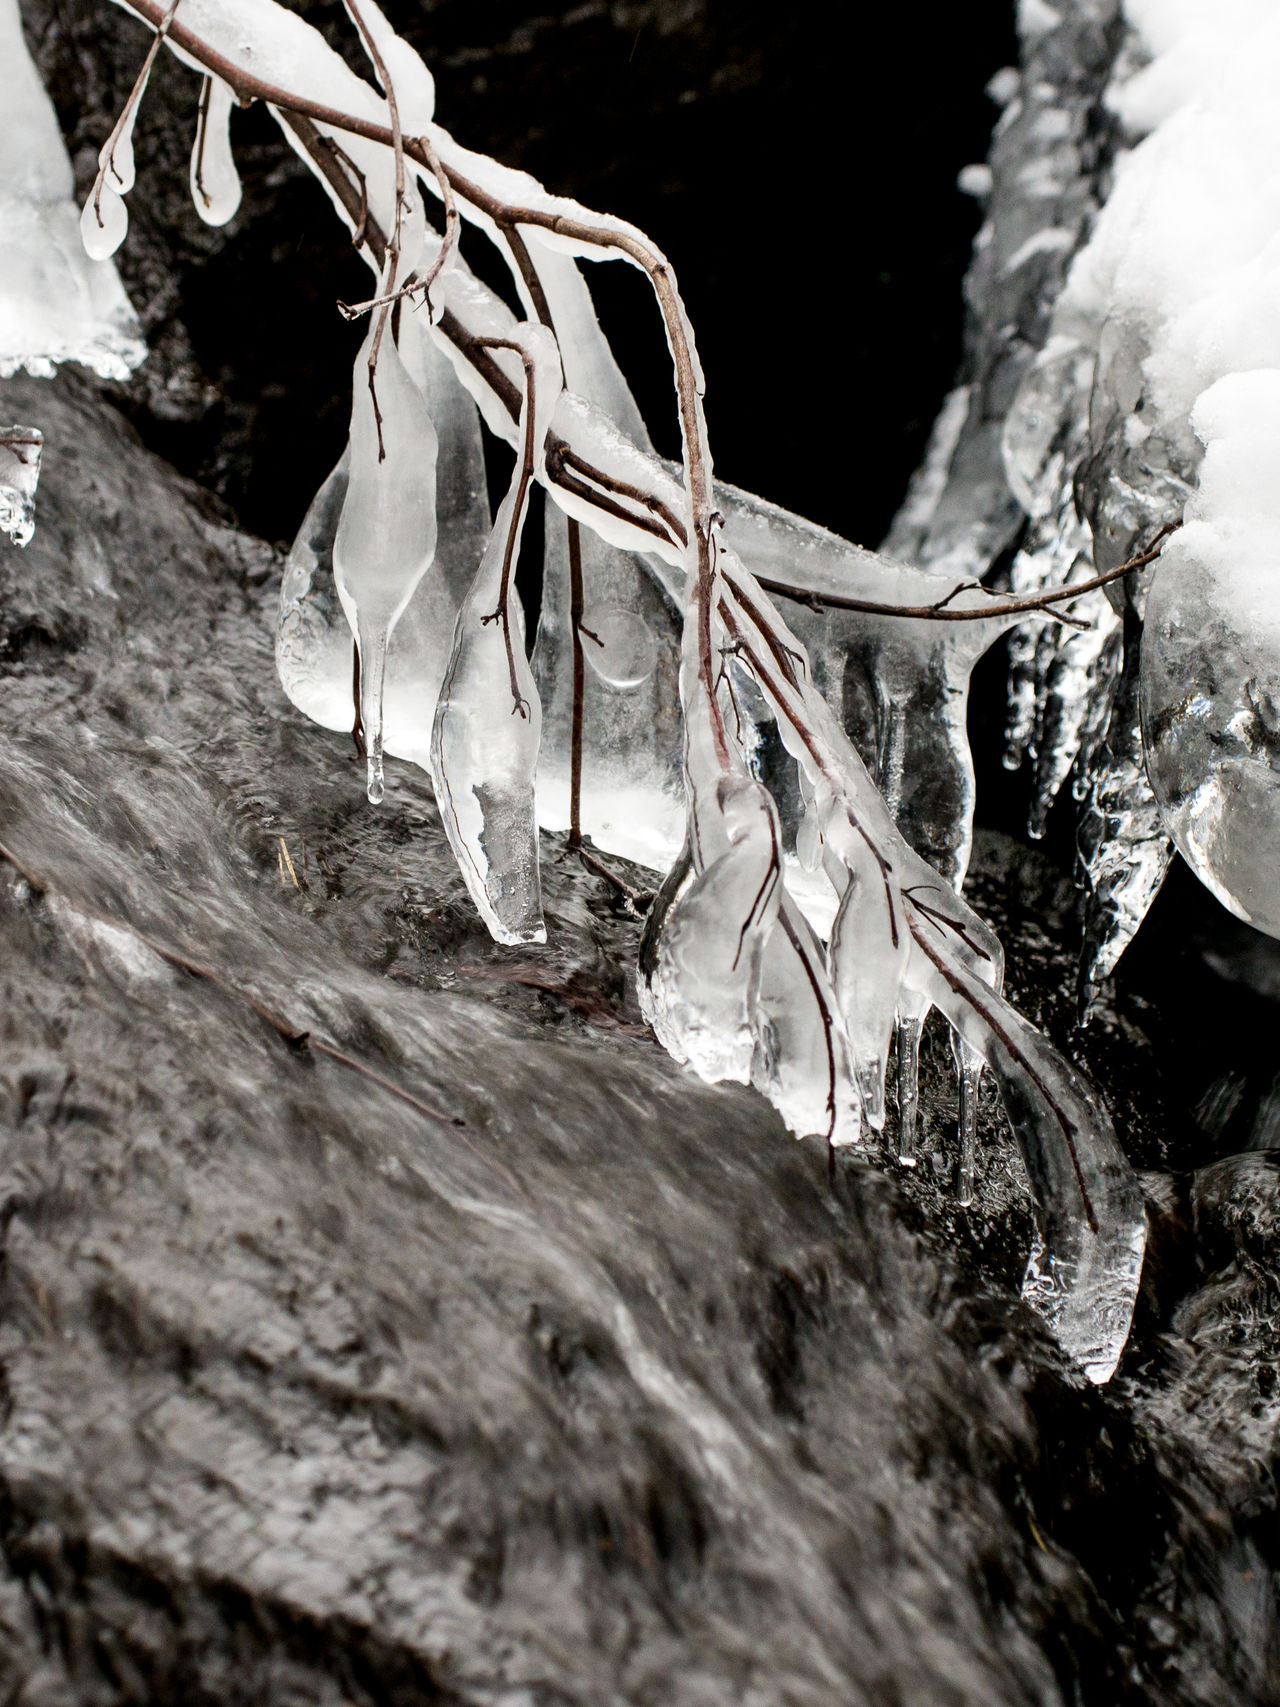 Ice above stream Close-up Ice Ice Beads Ice Branch Icy Twigs Nature Snow Winter Winter Stream In #copenhagen